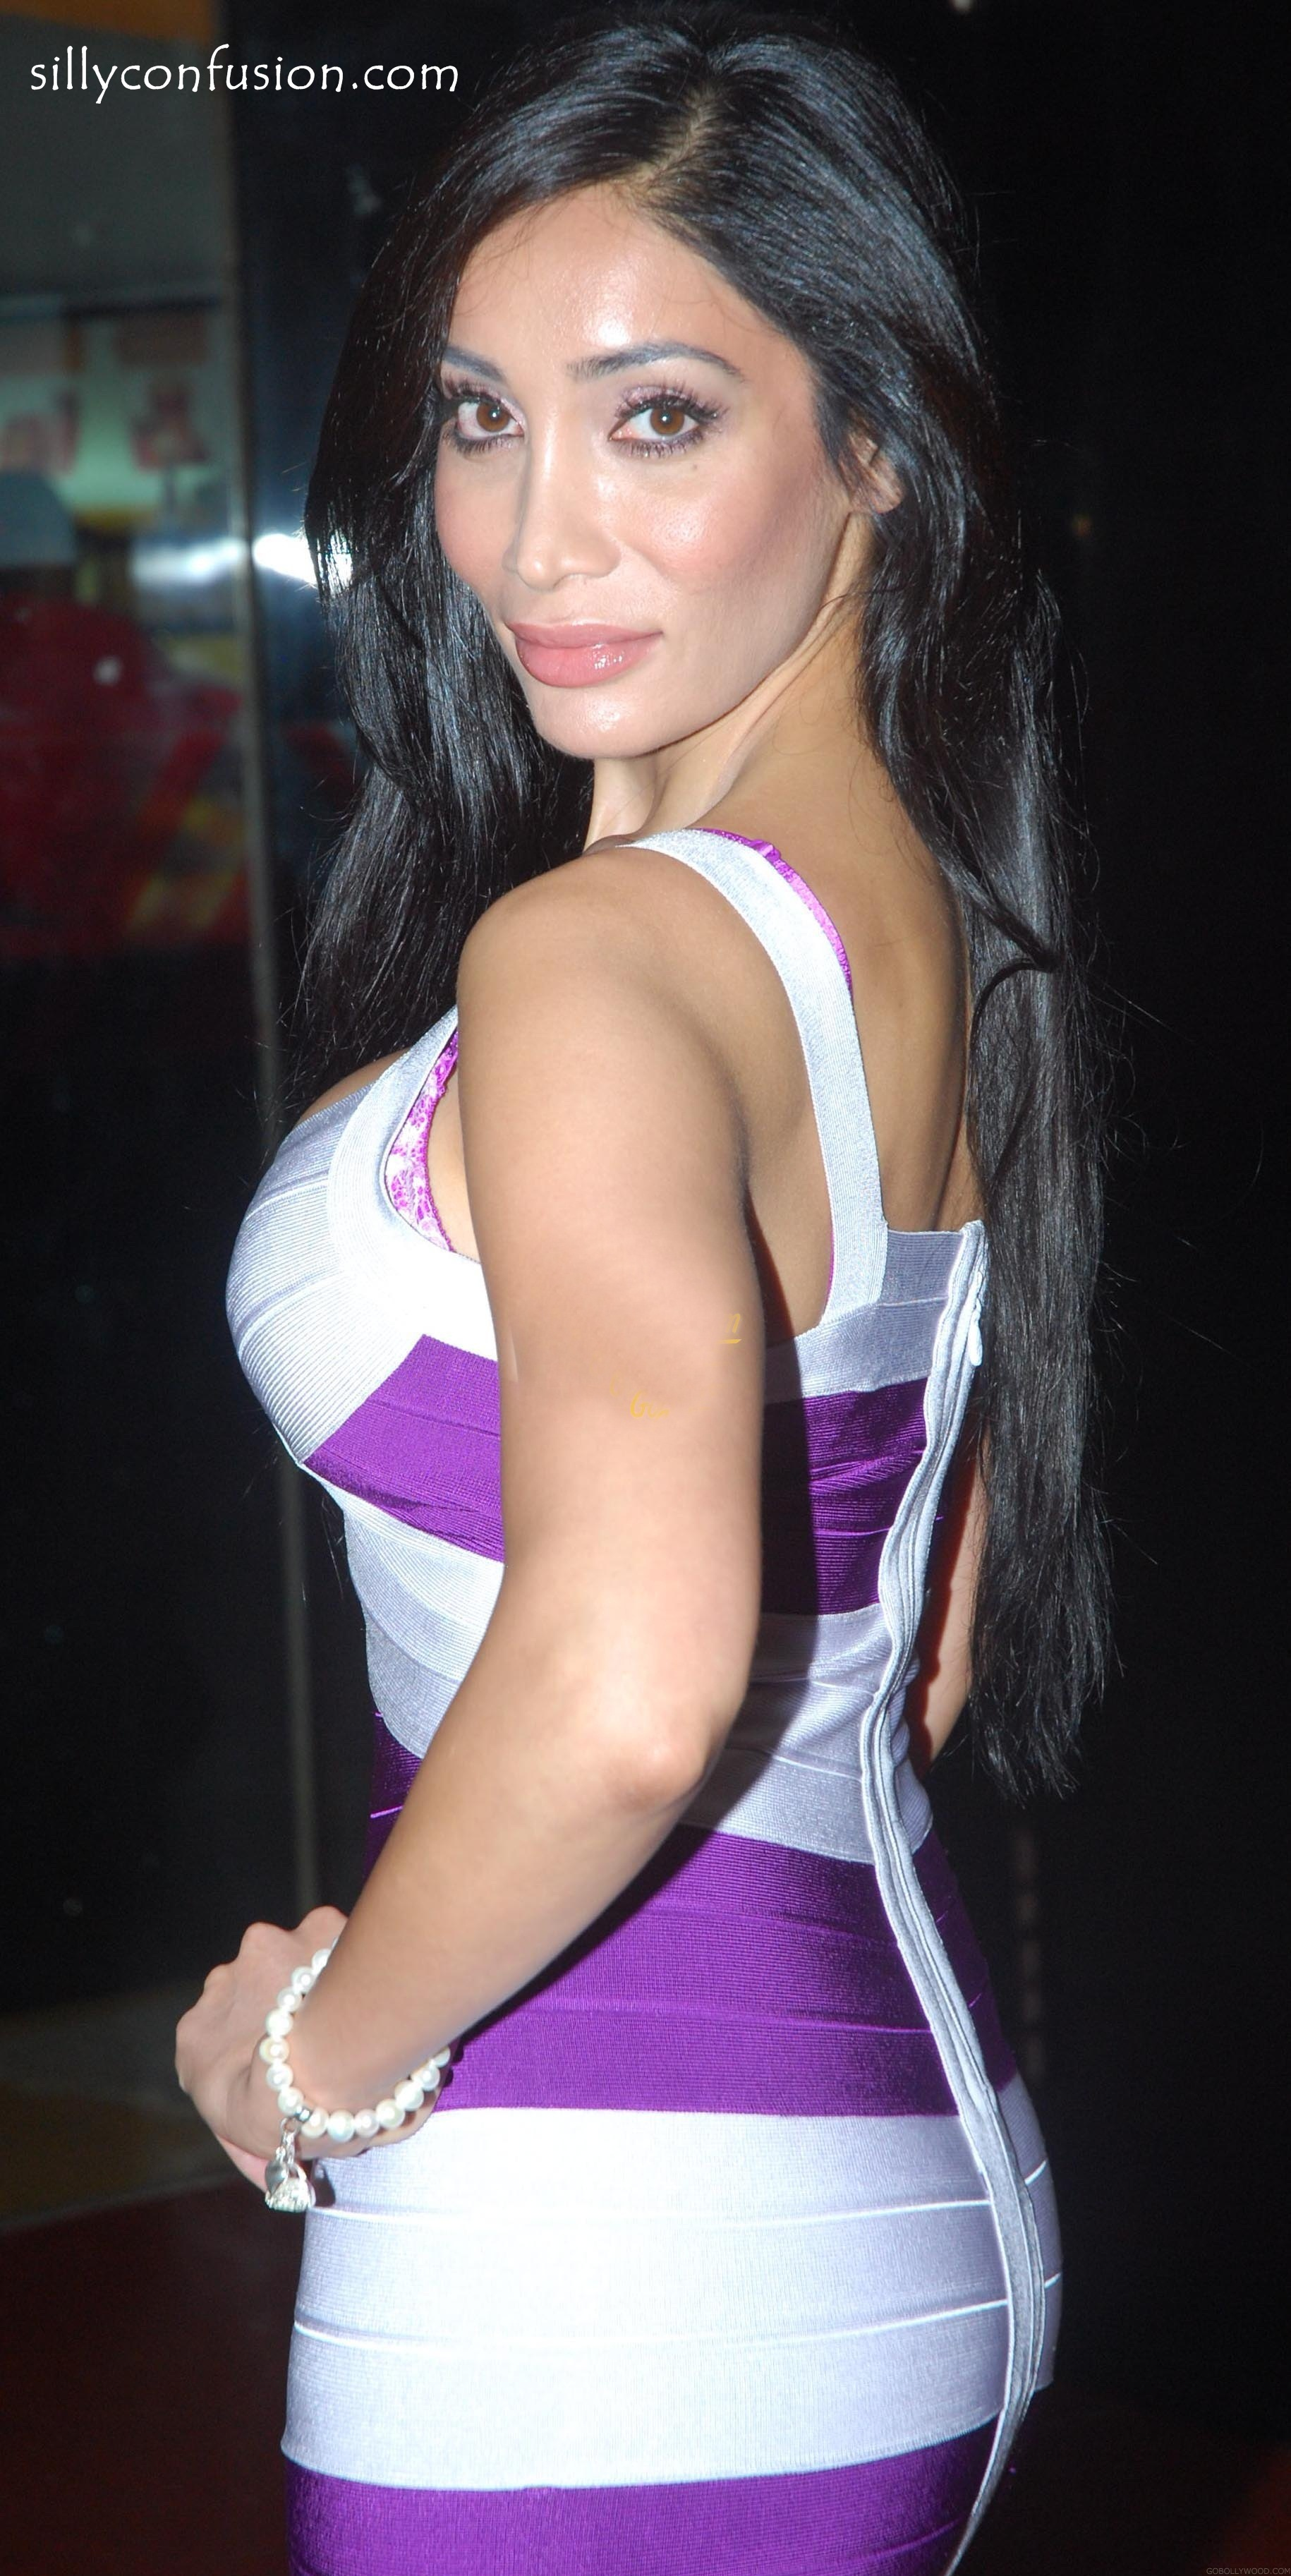 sofia hayat photo